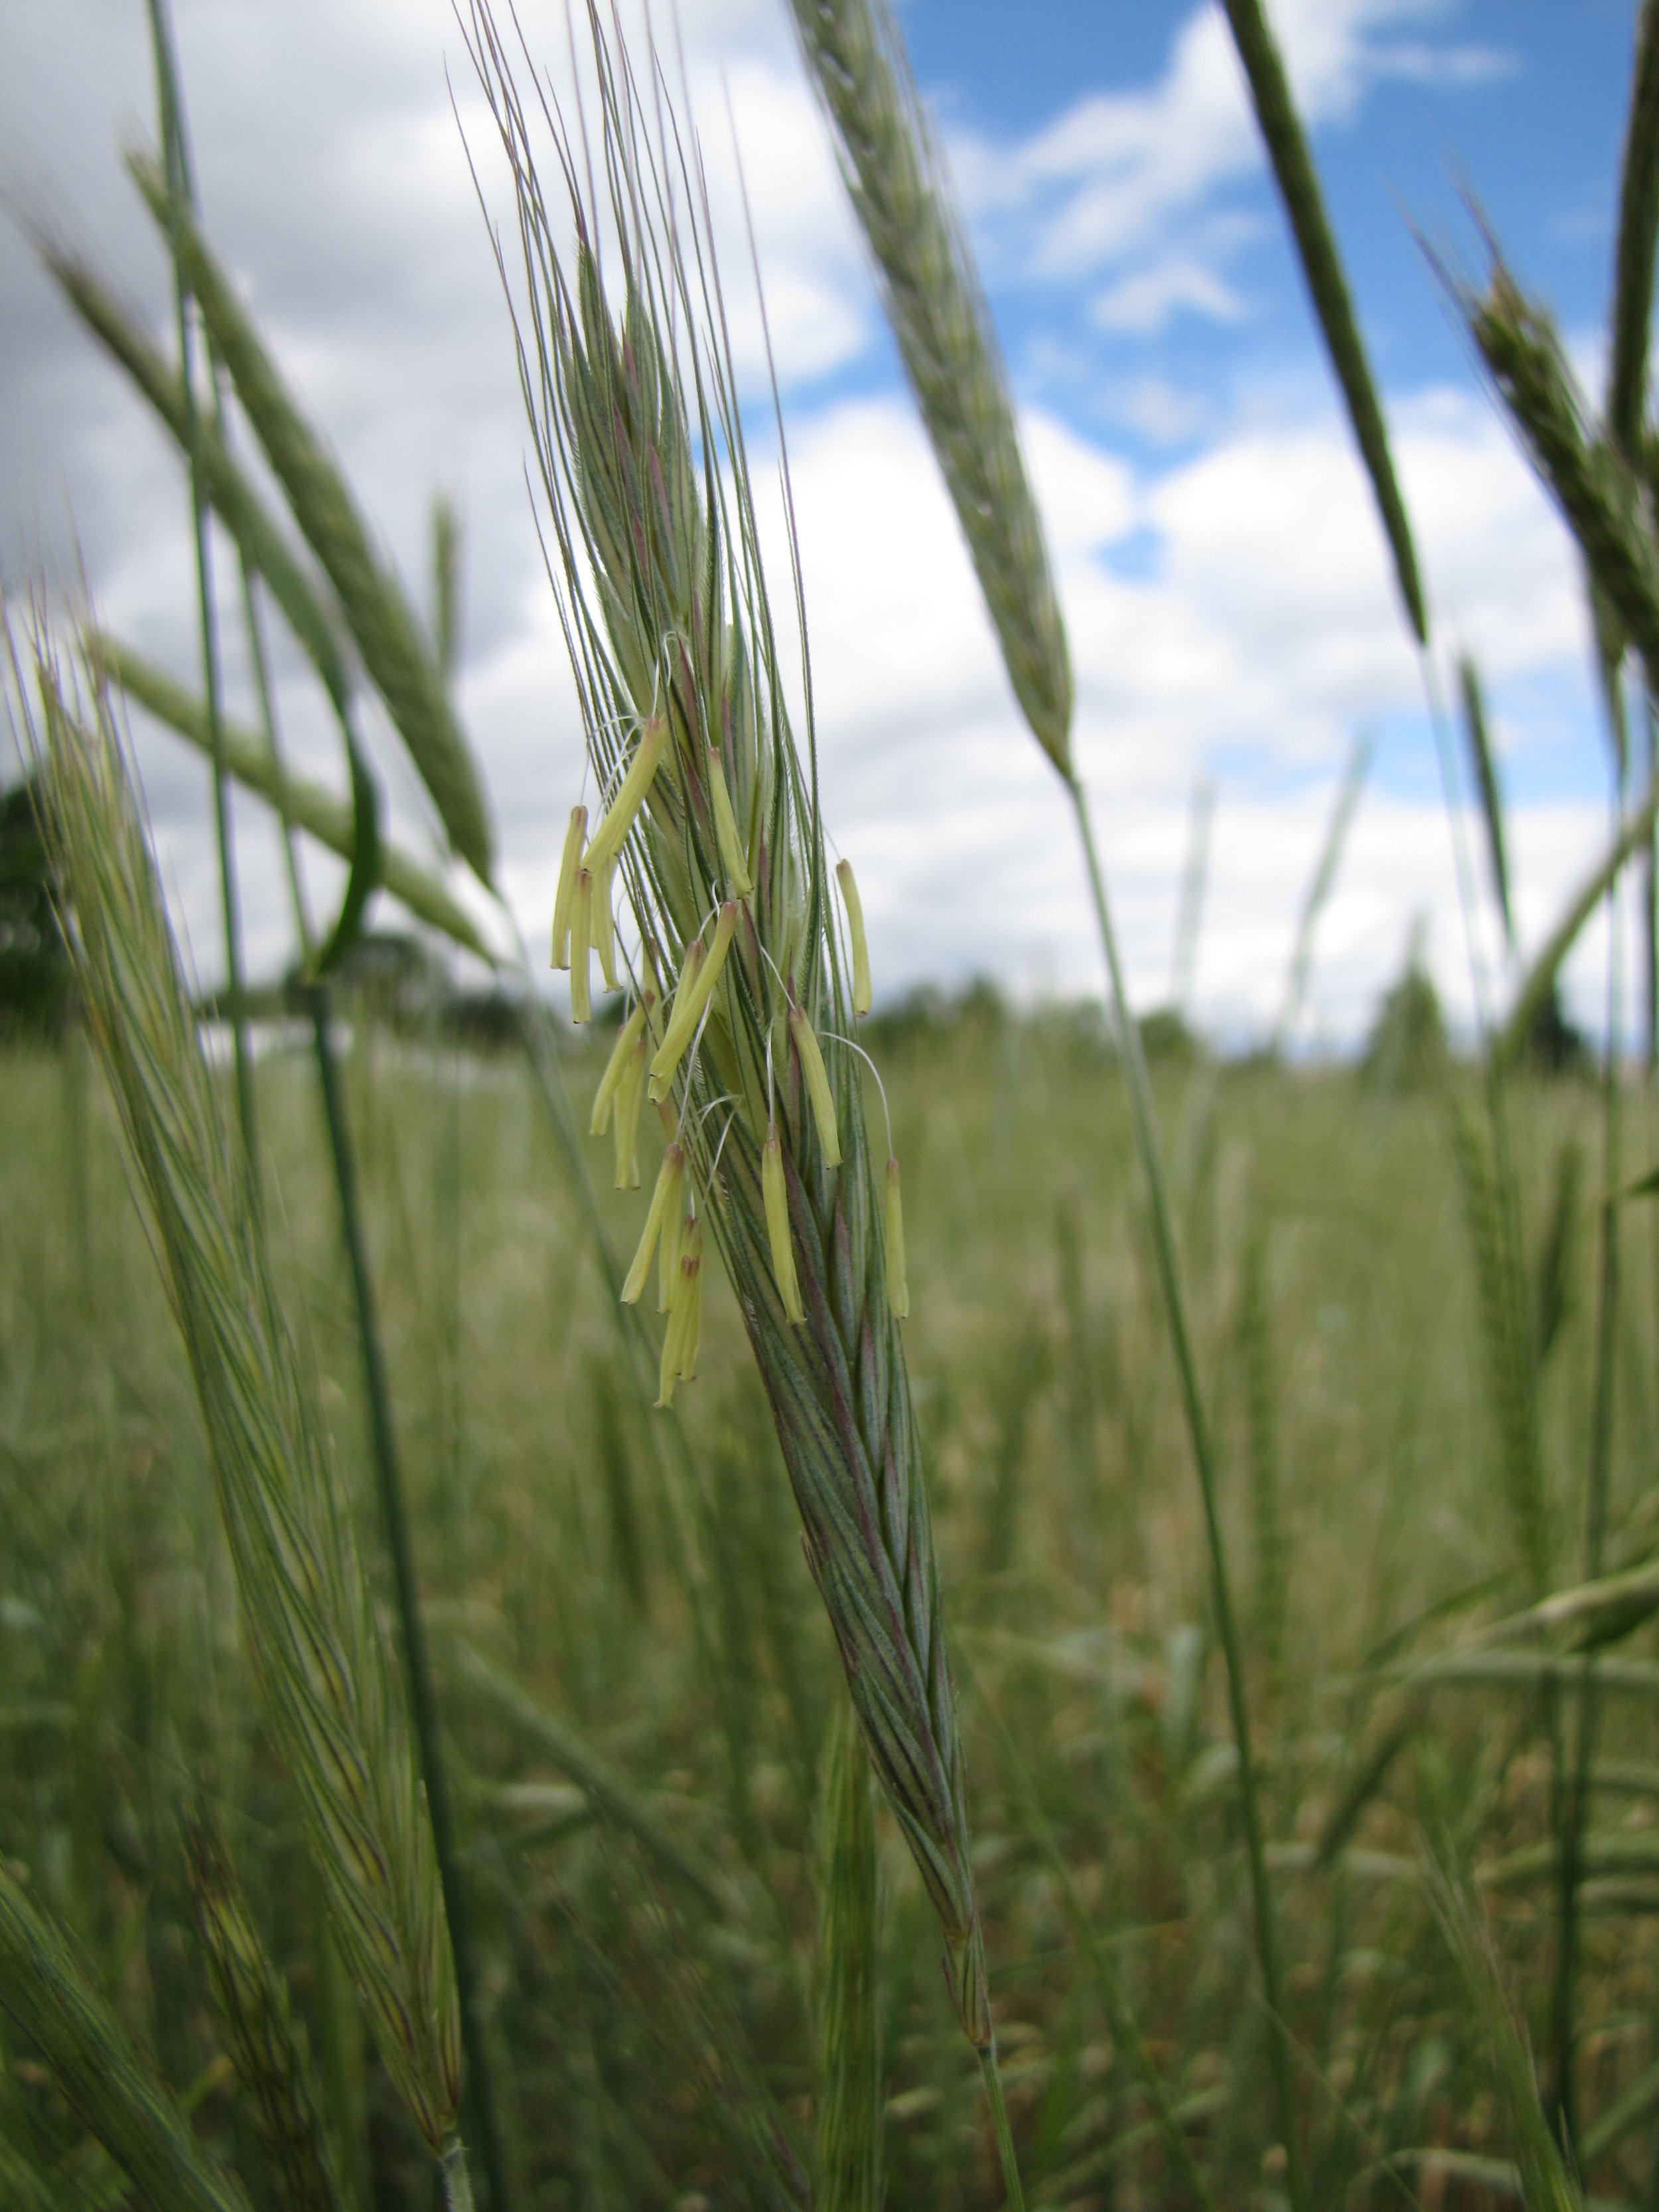 A close up of a cereal rye producting flowering parts.